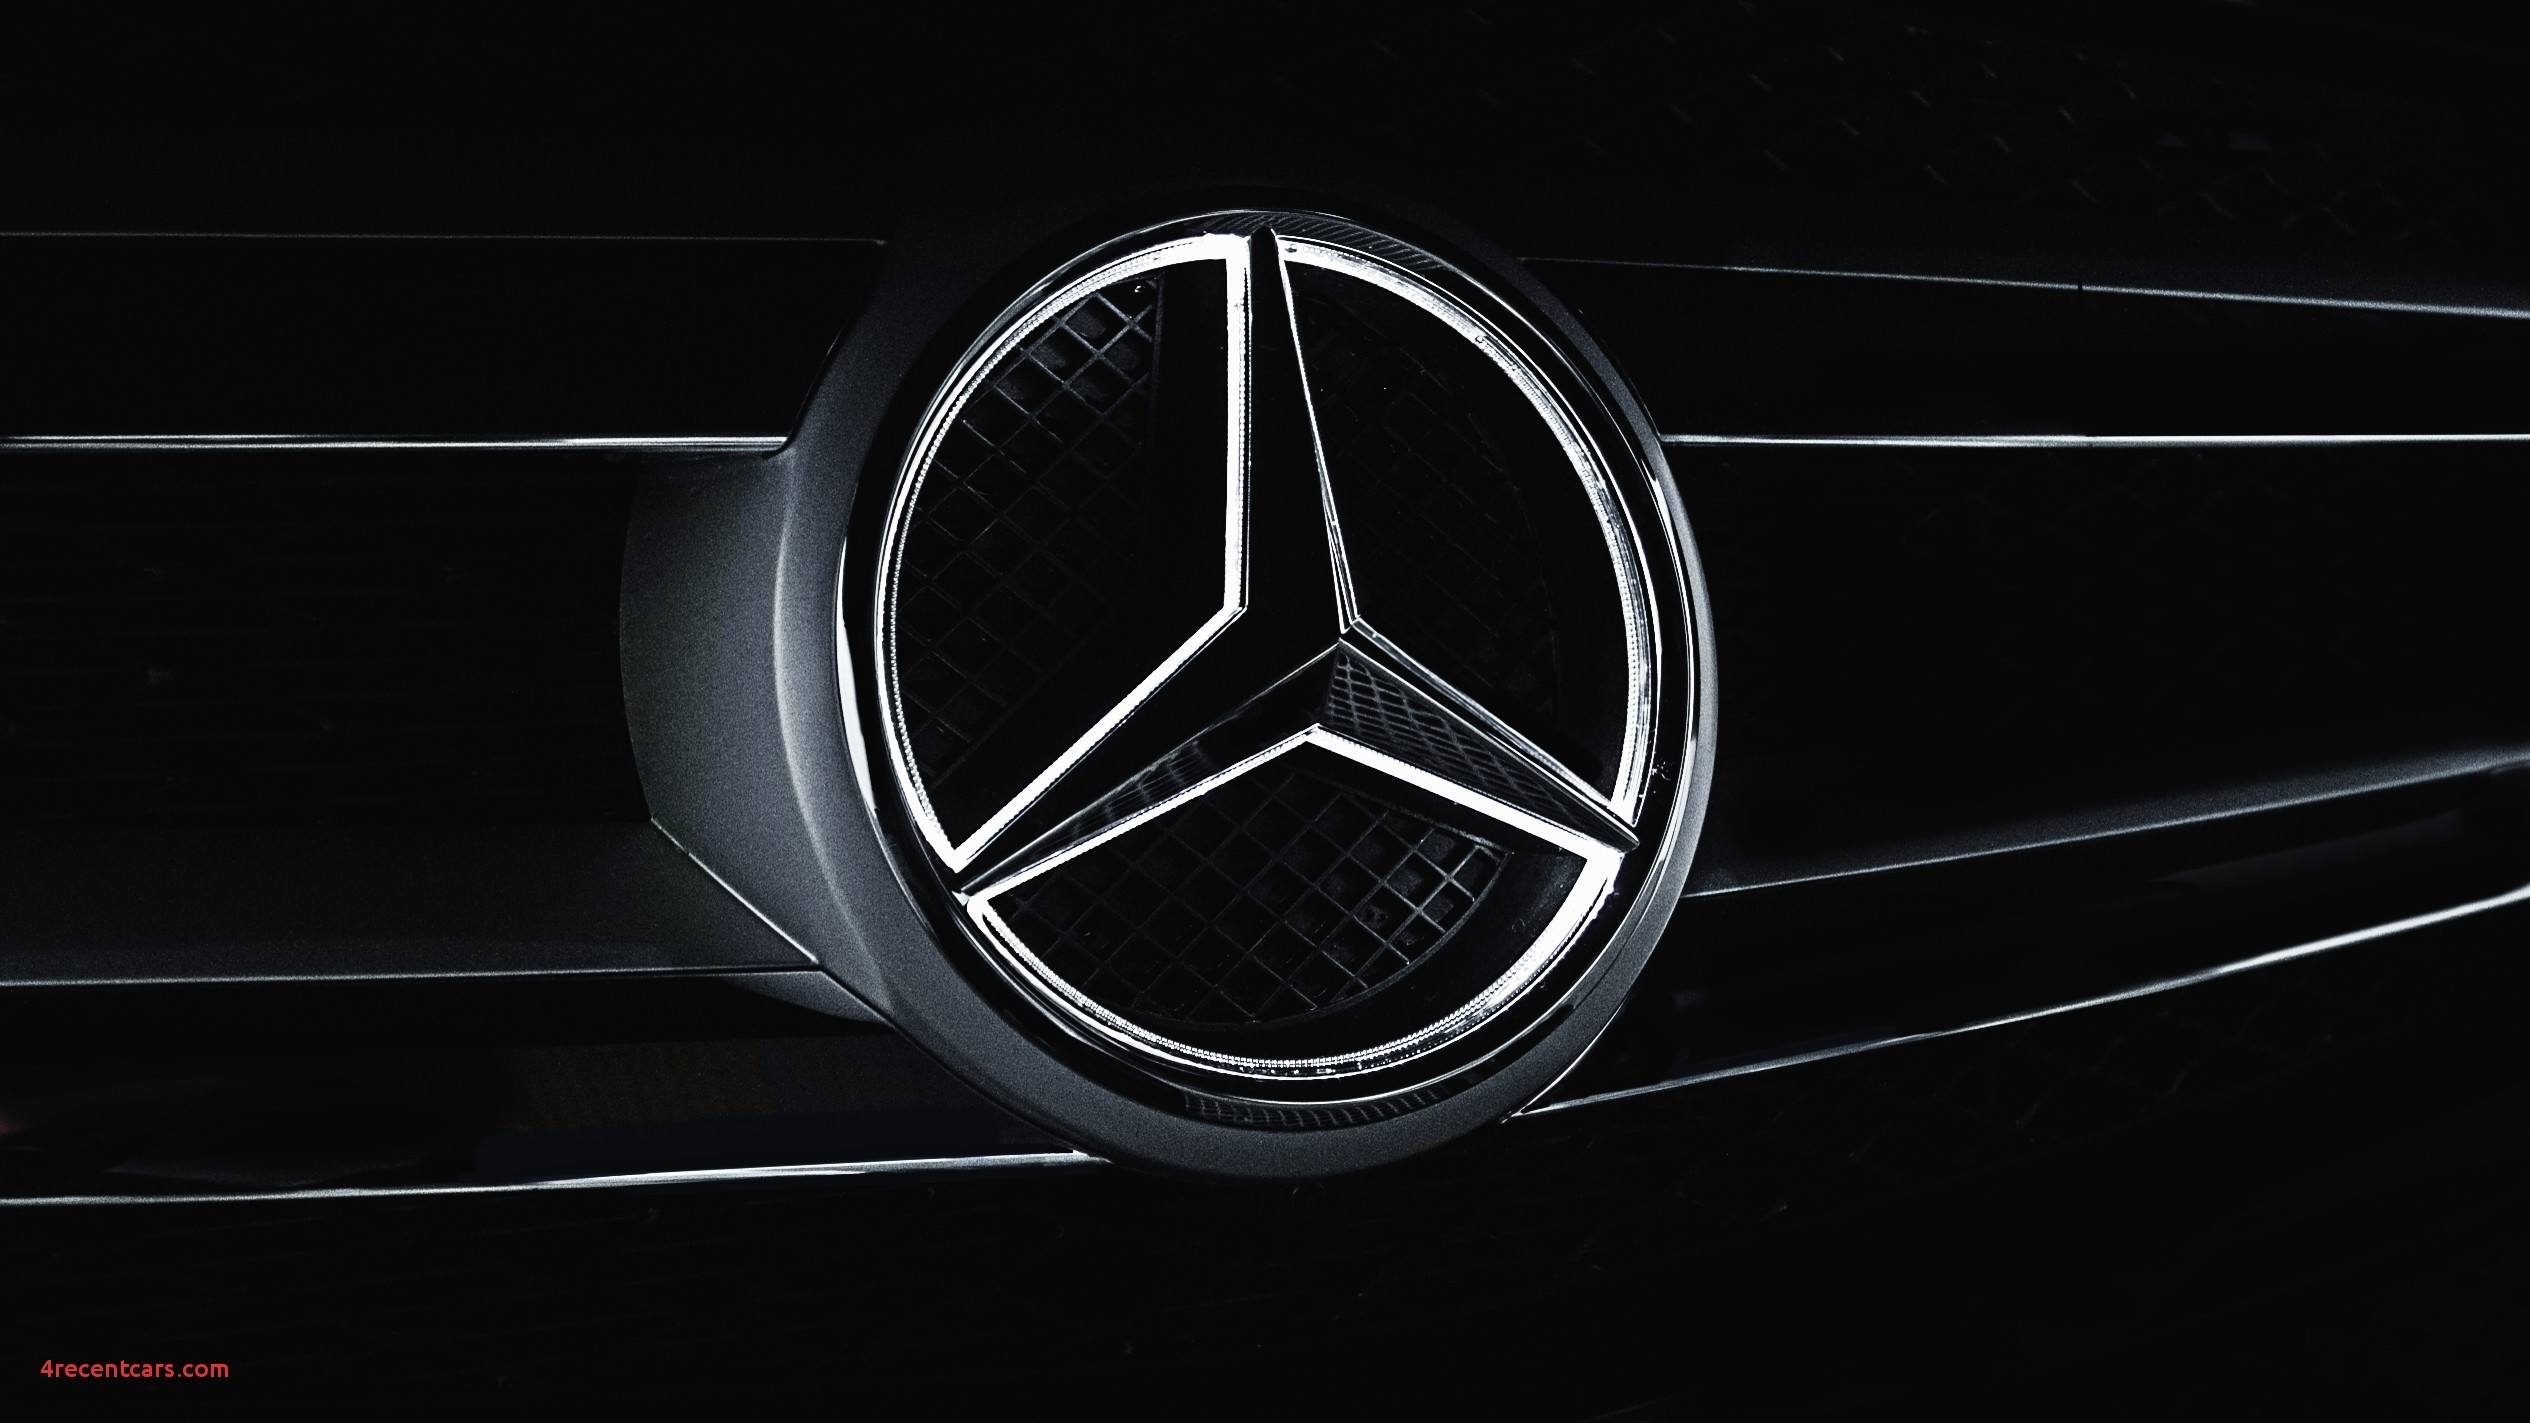 10 most popular mercedes benz logo wallpaper full hd 1080p for pc title wallpaper of mercedes car new mercedes benz logo wallpapers pictures dimension 2530 x 1423 file type jpgjpeg voltagebd Gallery